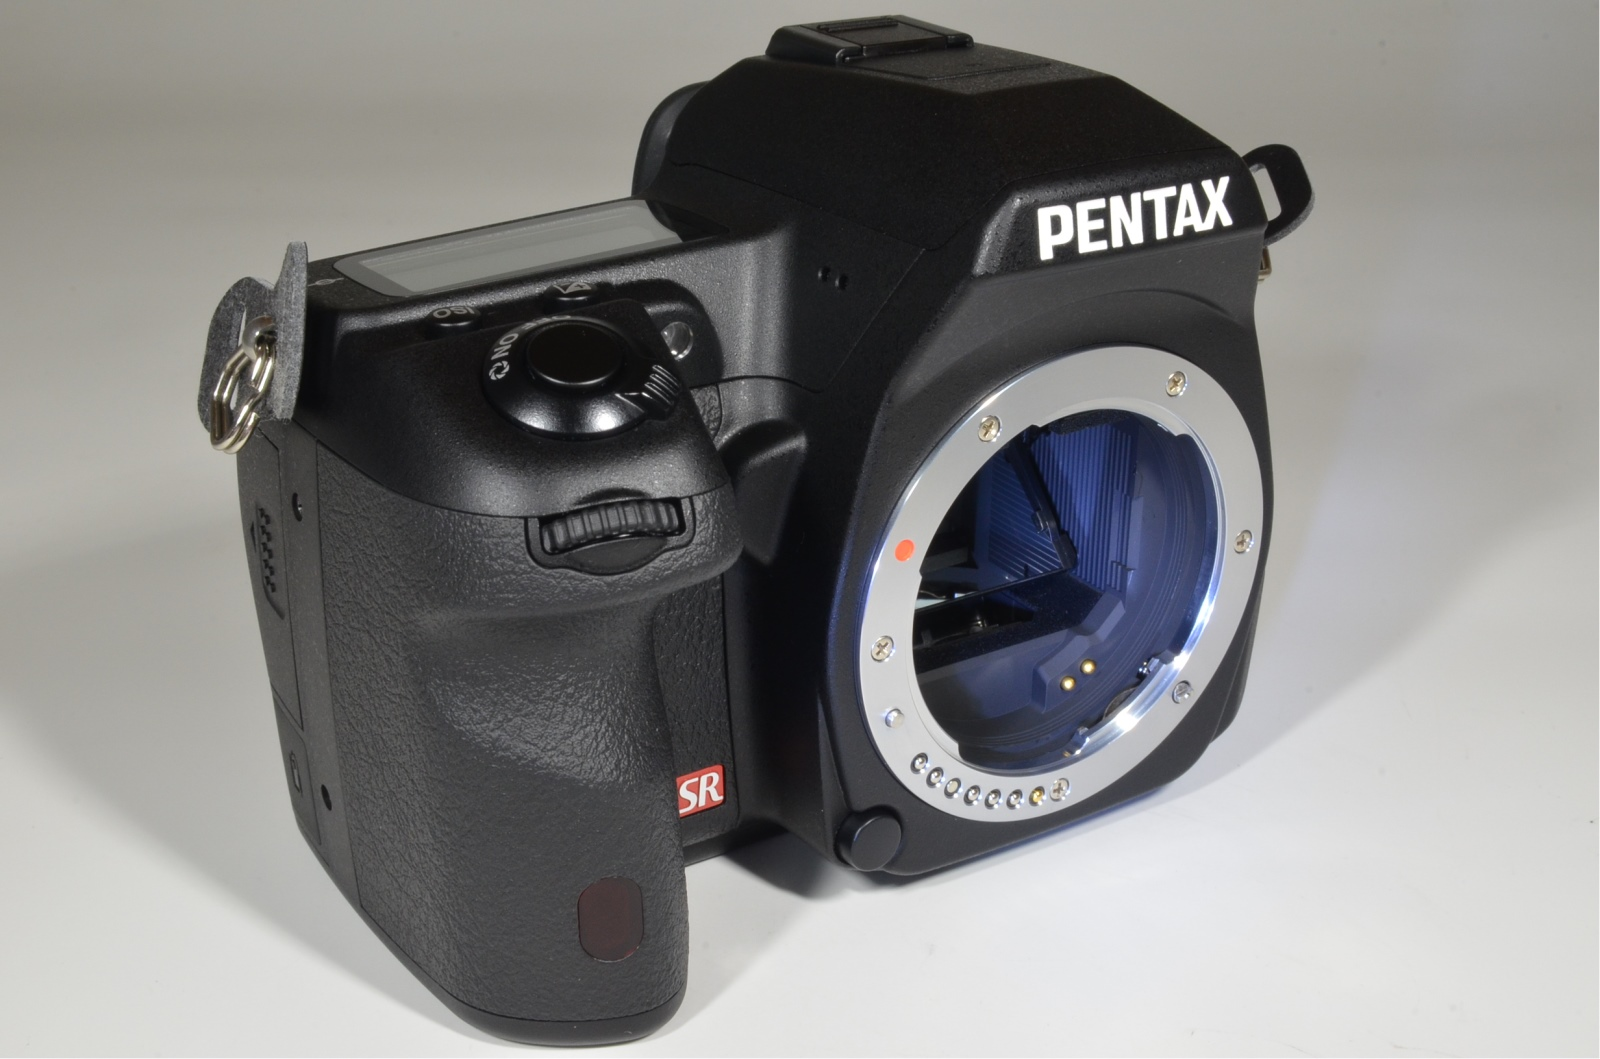 pentax k-5 ii with da 18-135mm f/3.5-5.6 ed al wr